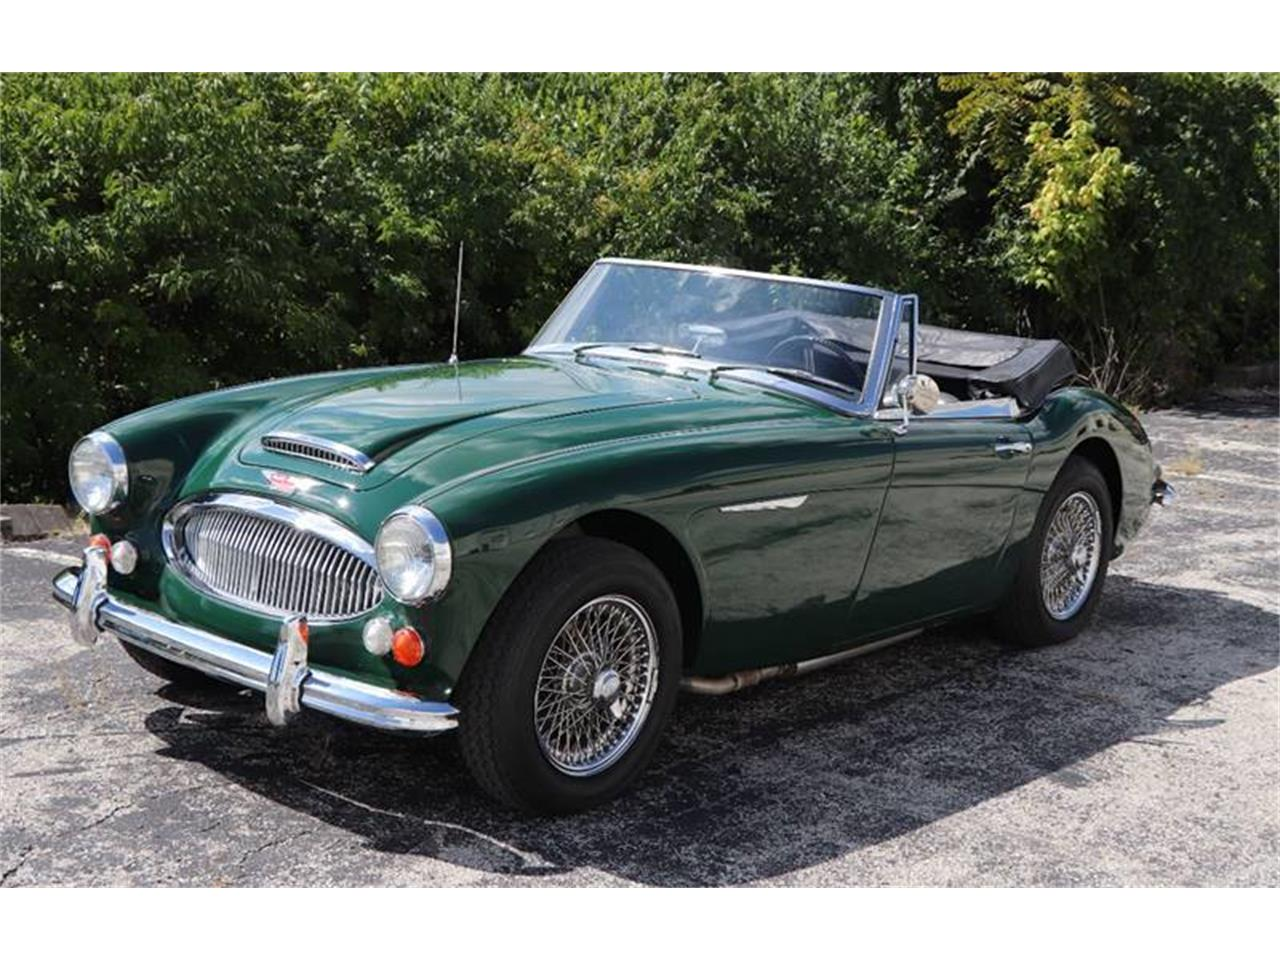 1967 Austin-Healey 3000 Mark III BJ8 for sale in St Louis, MO – photo 4